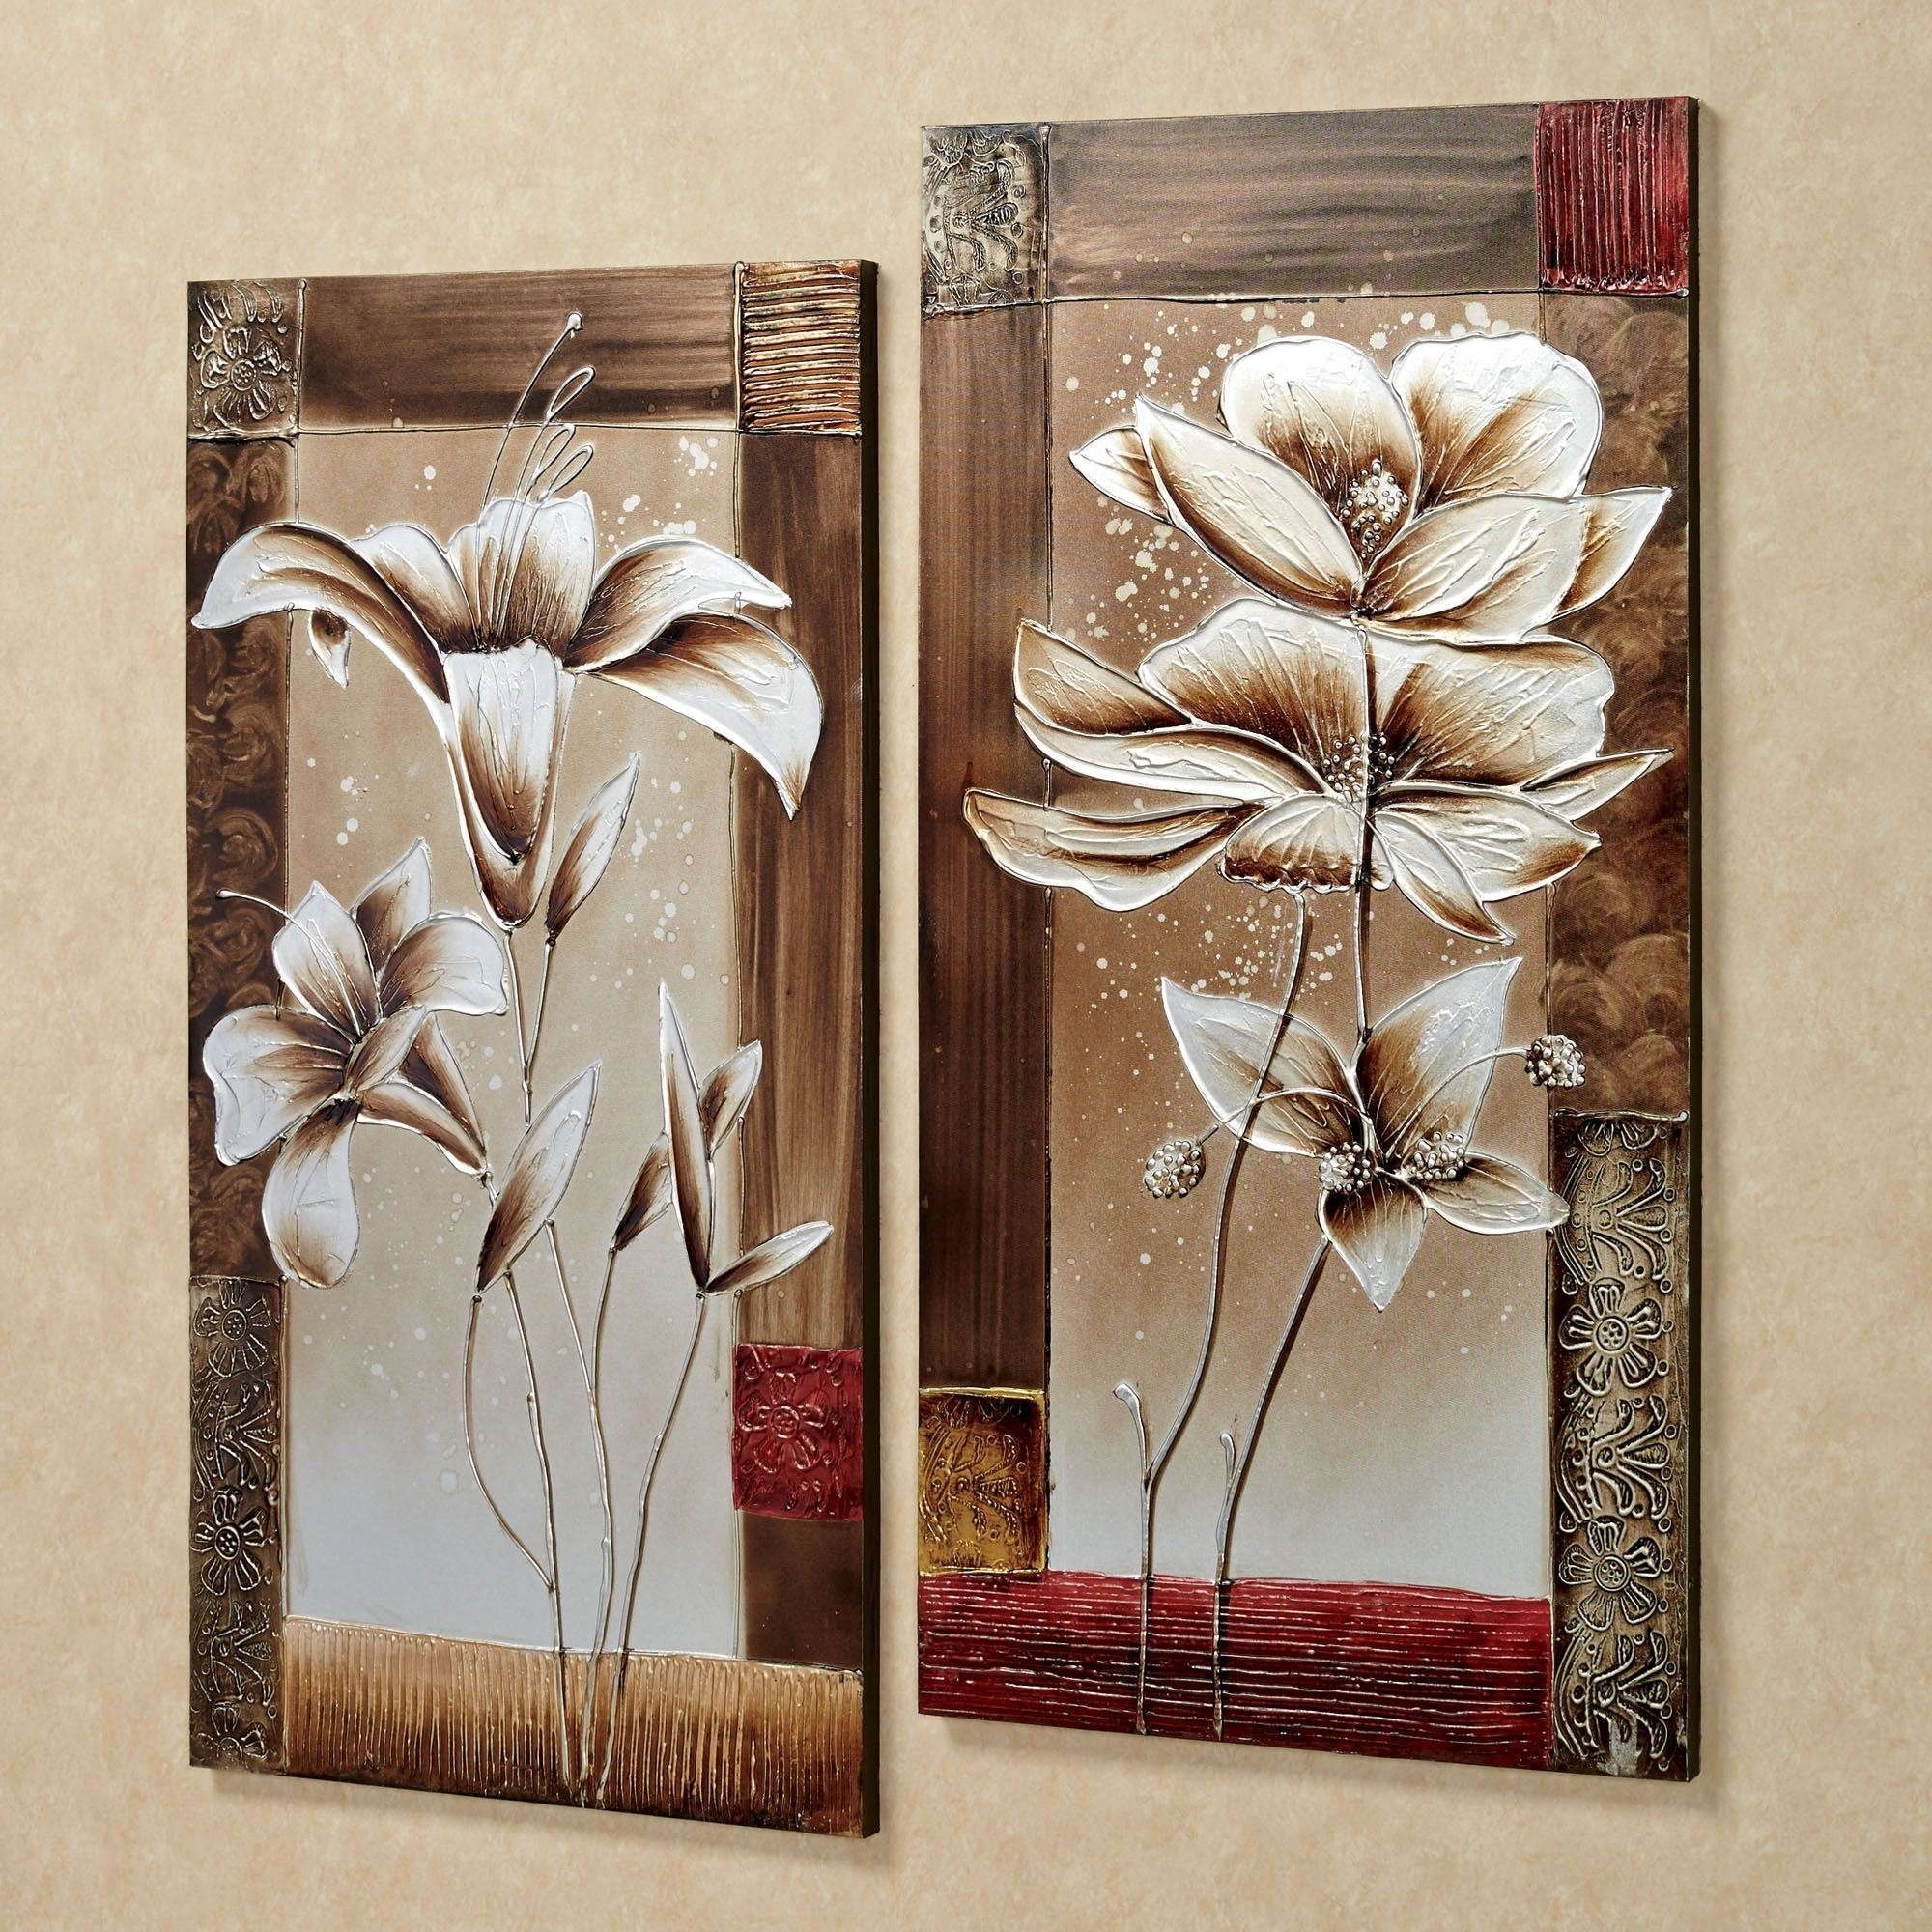 Petals Of Spring Floral Canvas Wall Art Set throughout Most Up-to-Date Canvas Wall Art Sets